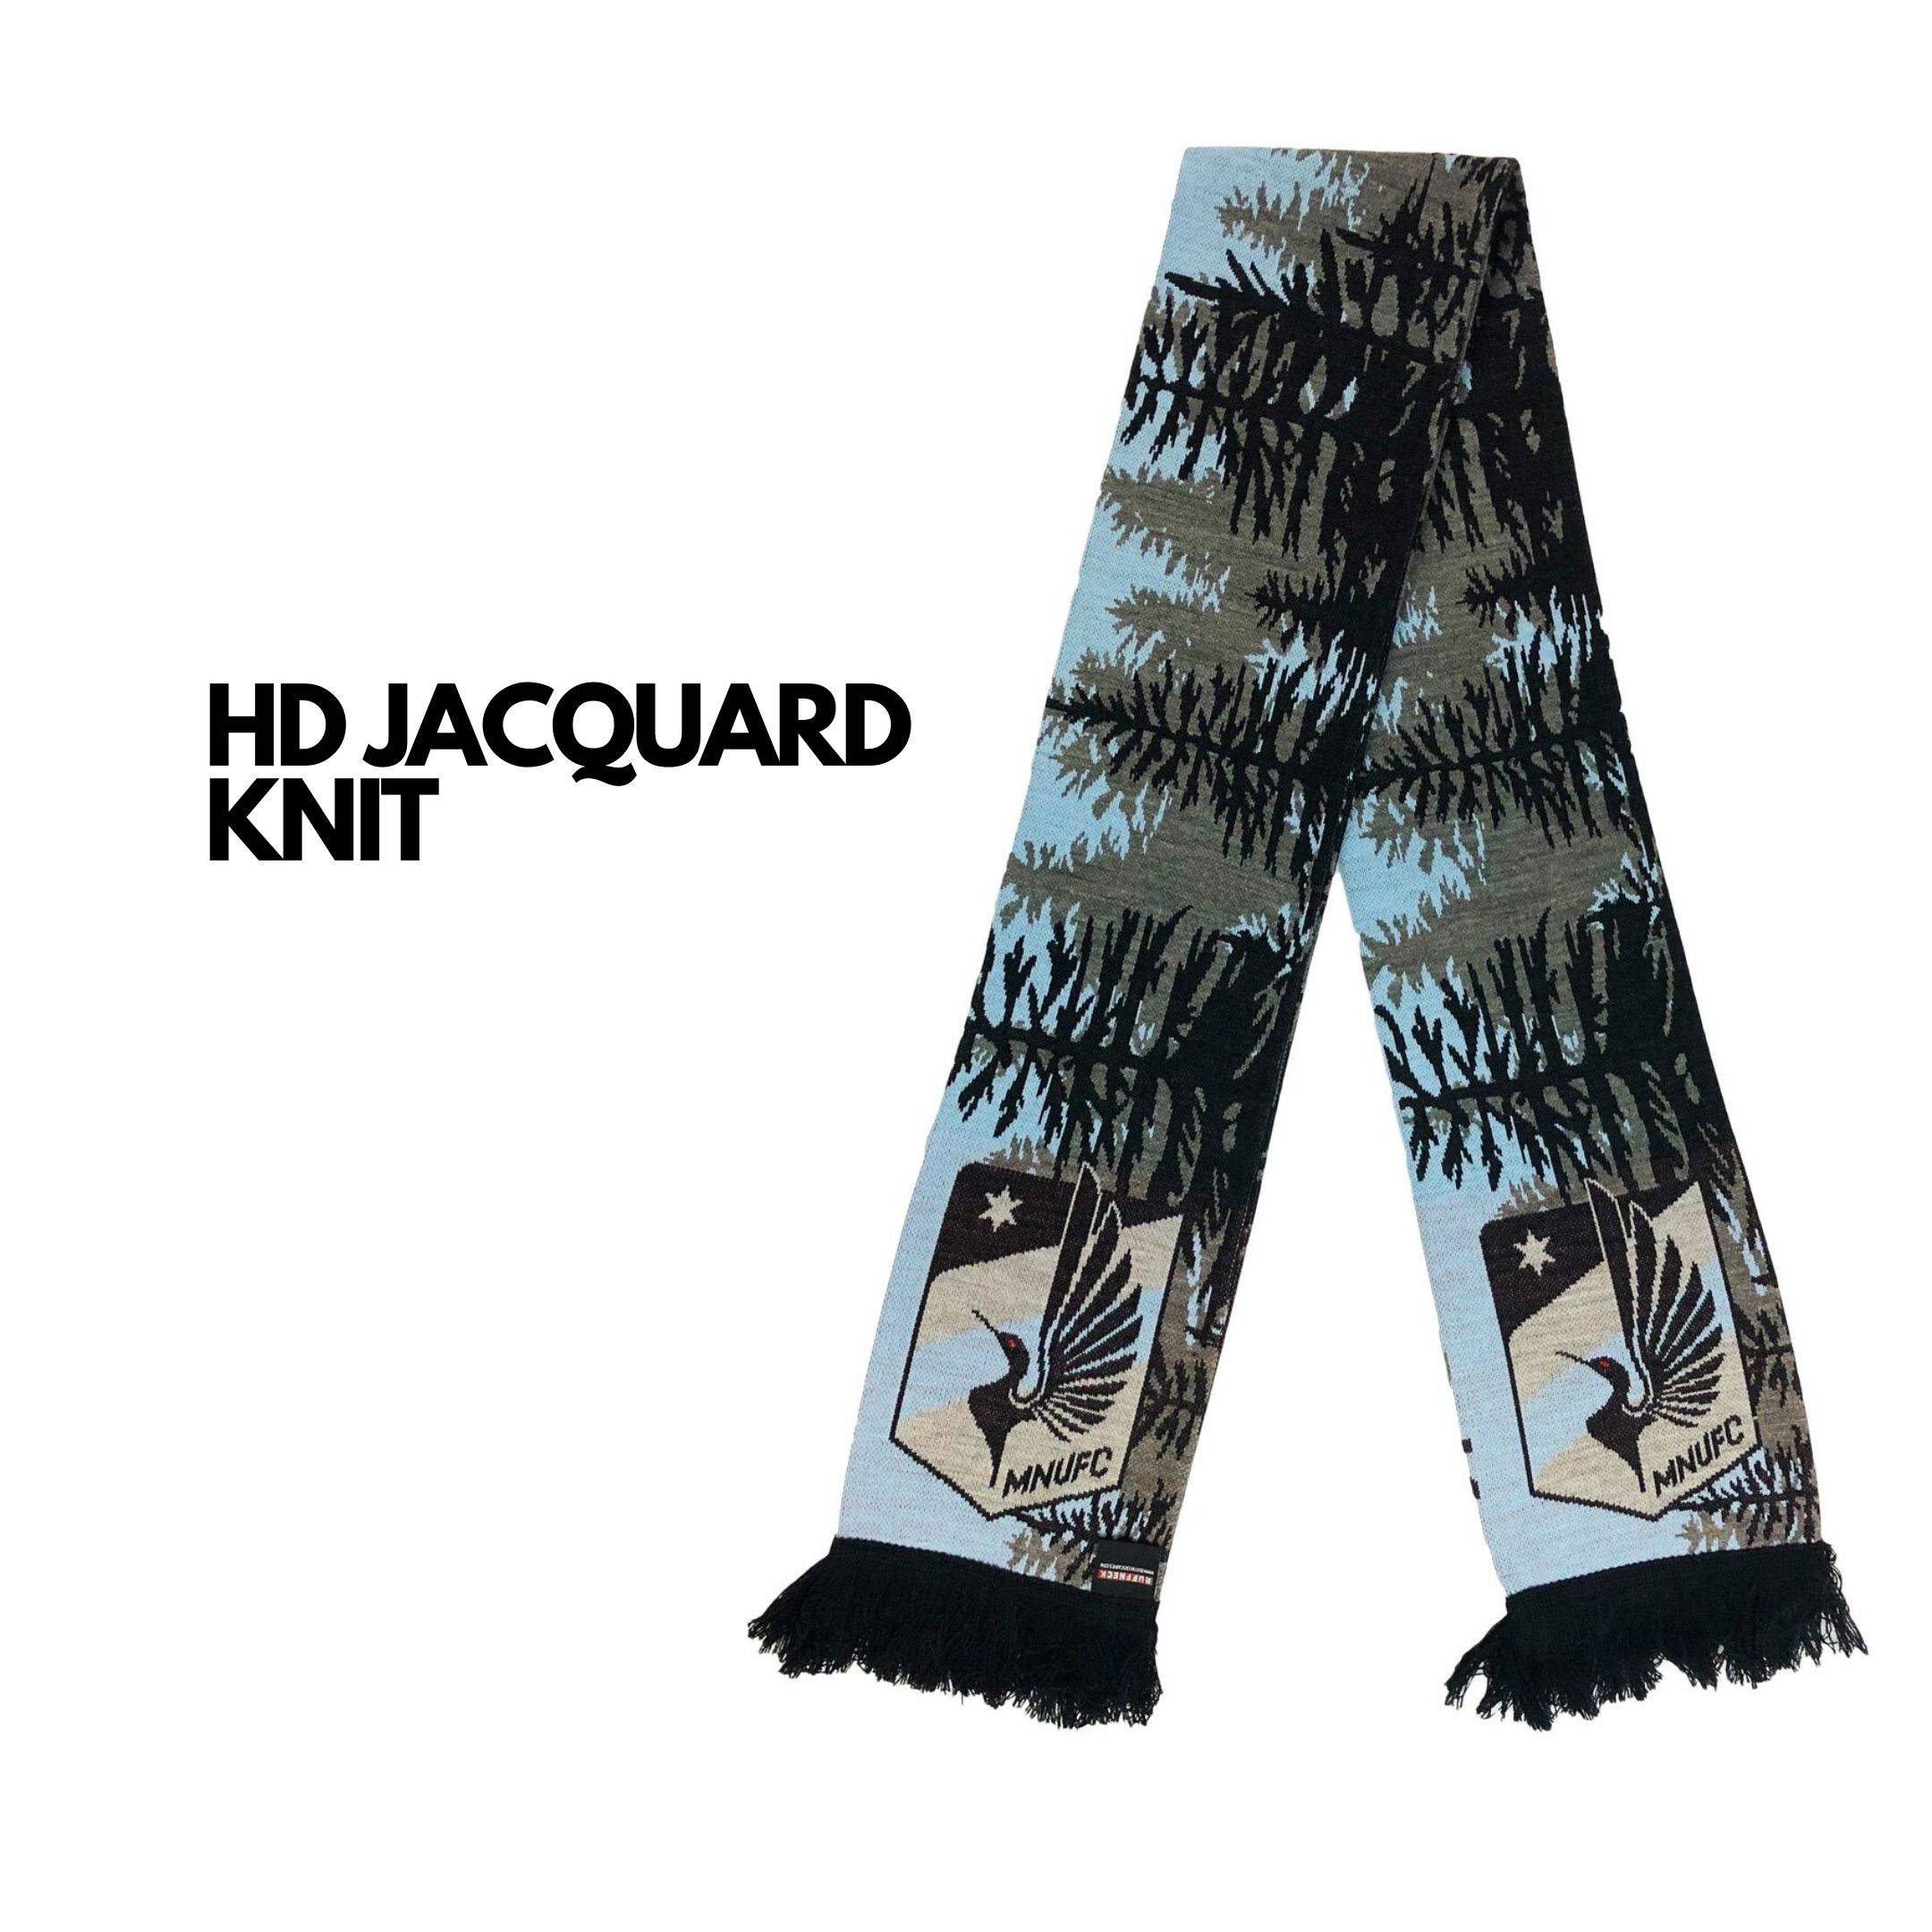 hd jacquard knit scarf